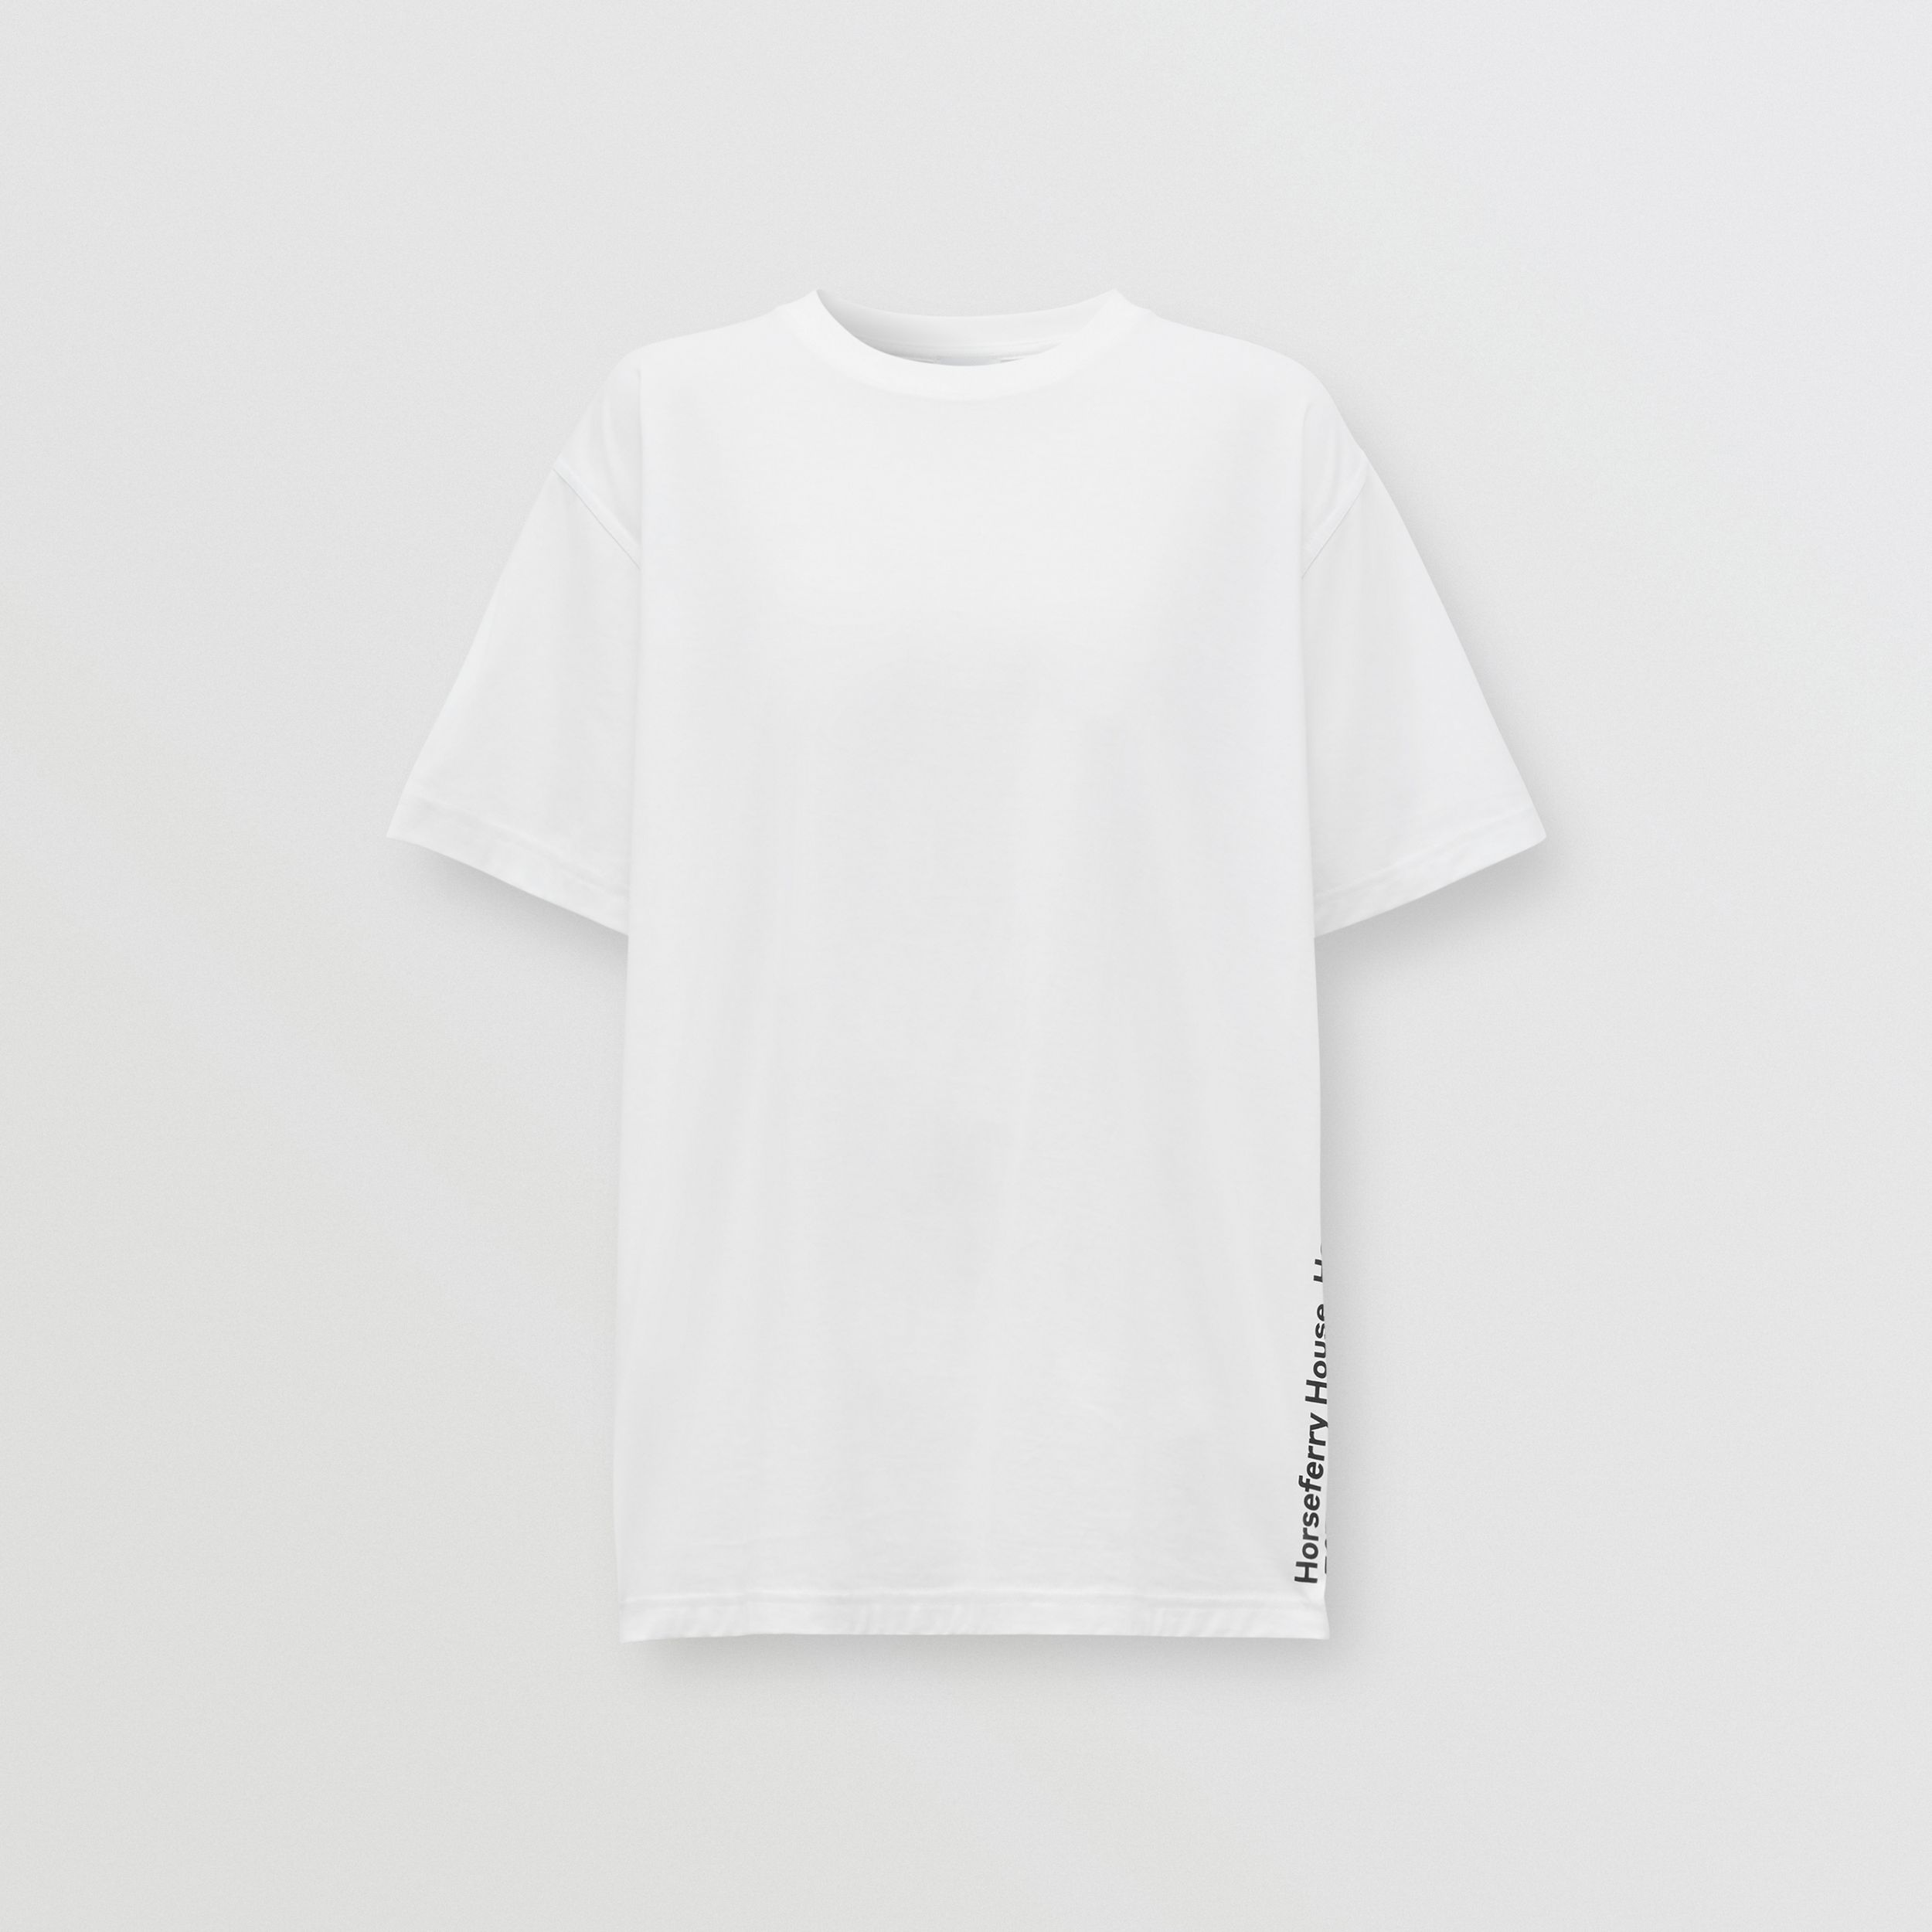 Coordinates Print Cotton Oversized T-shirt in White - Women | Burberry - 4